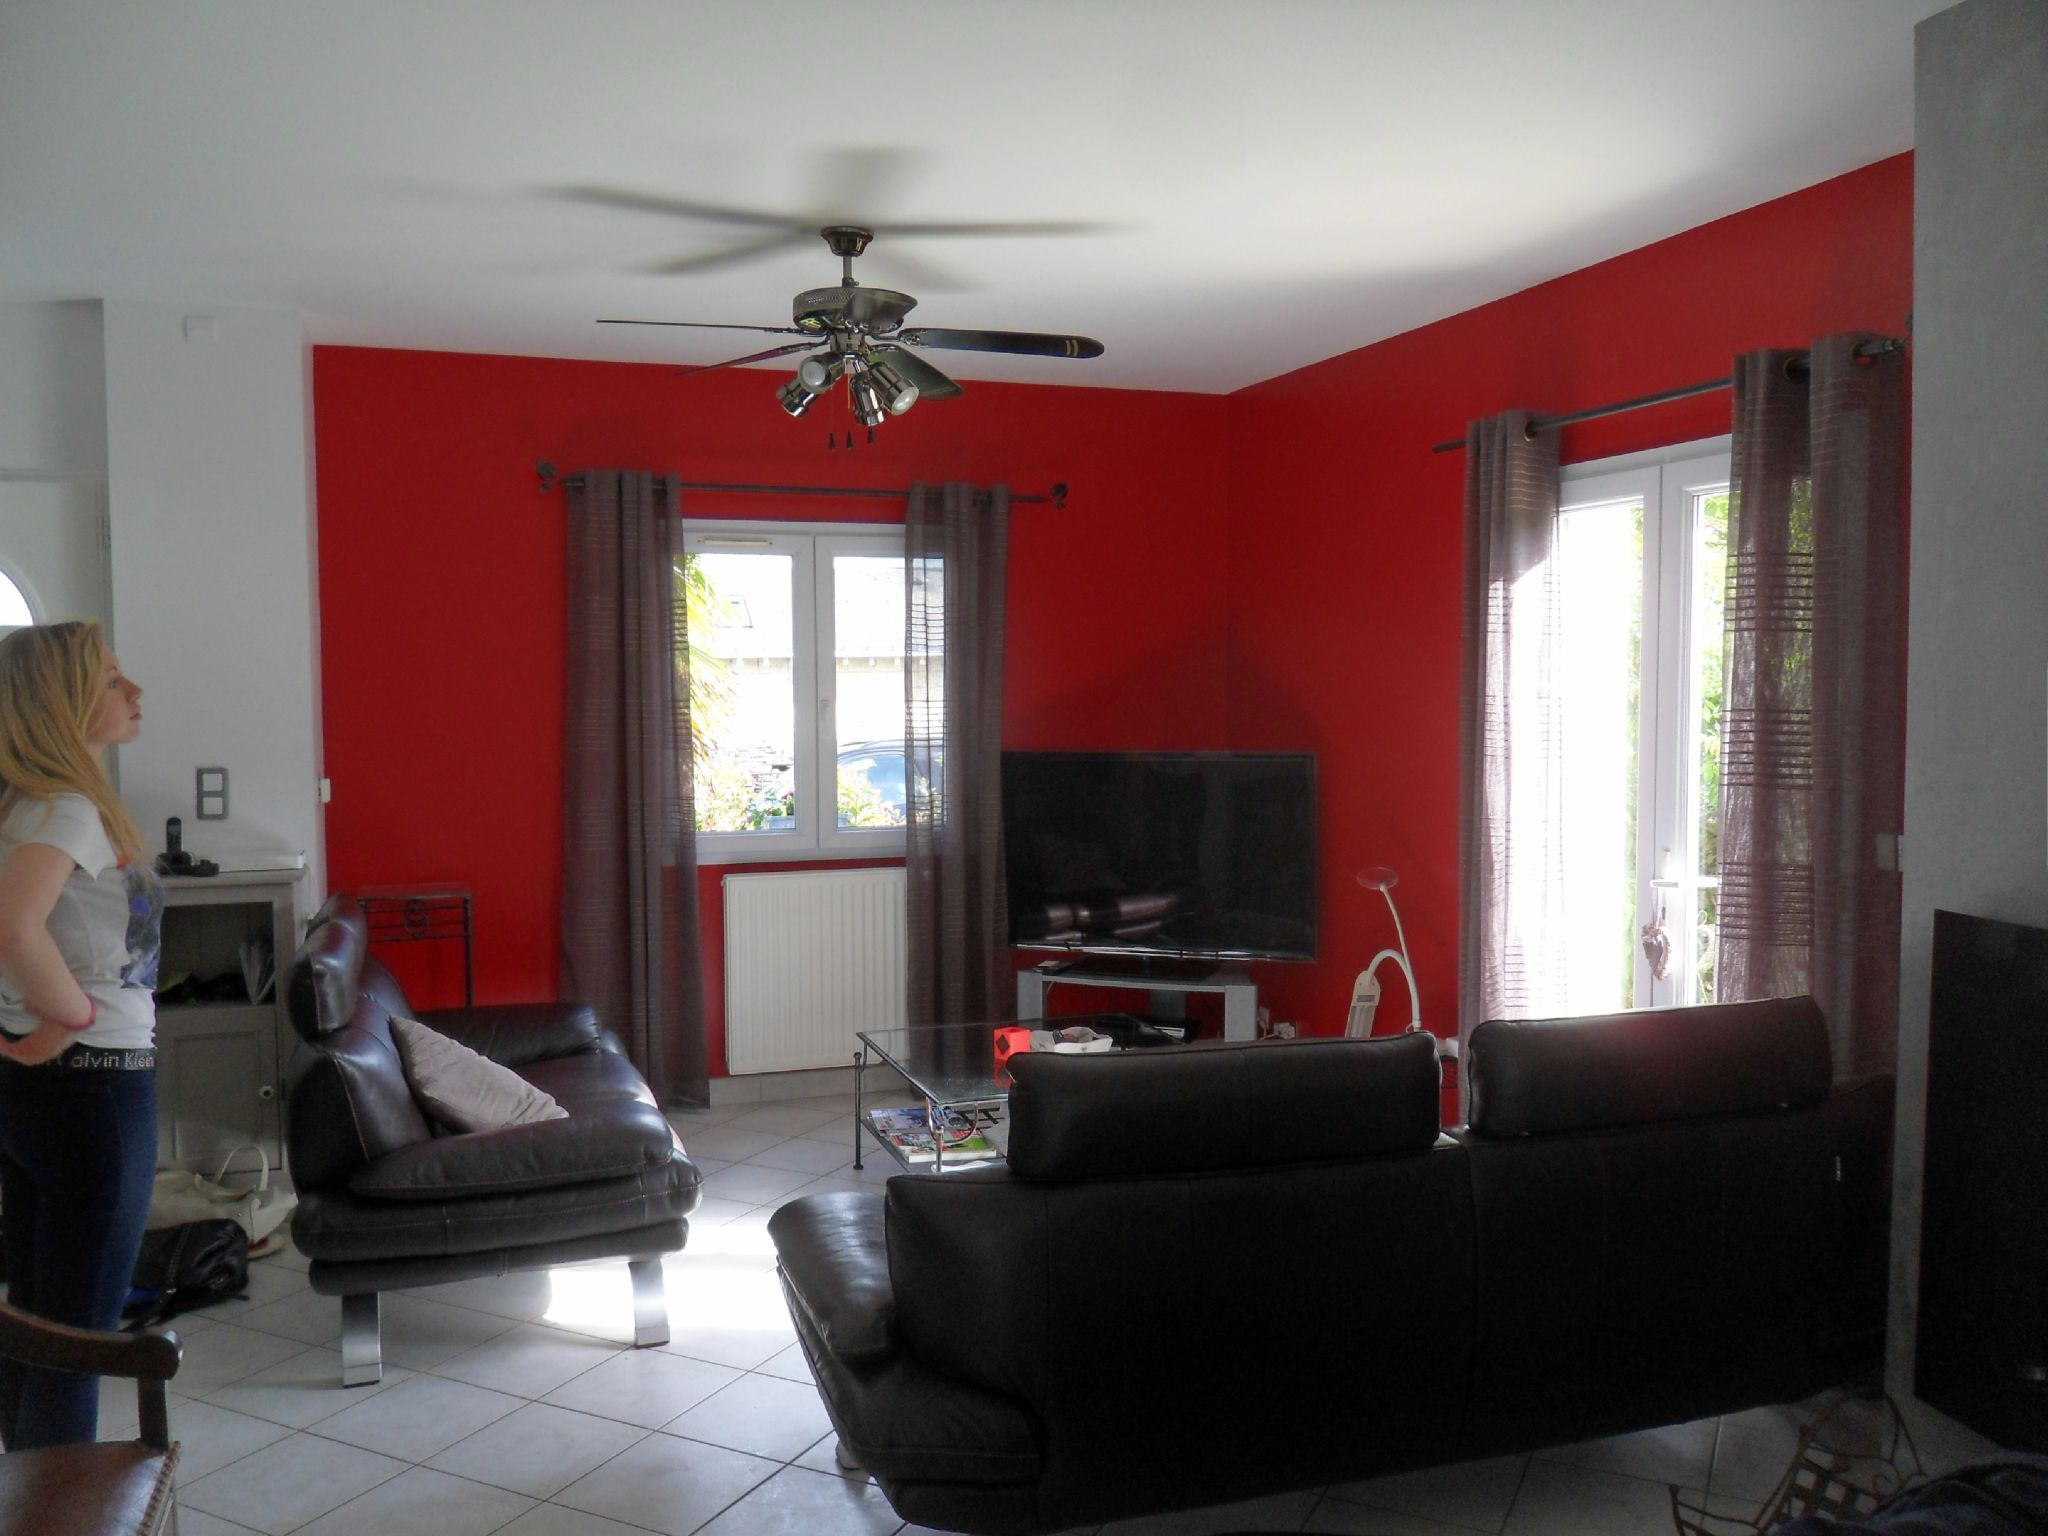 Decoration mur rouge - Deco mur rouge ...